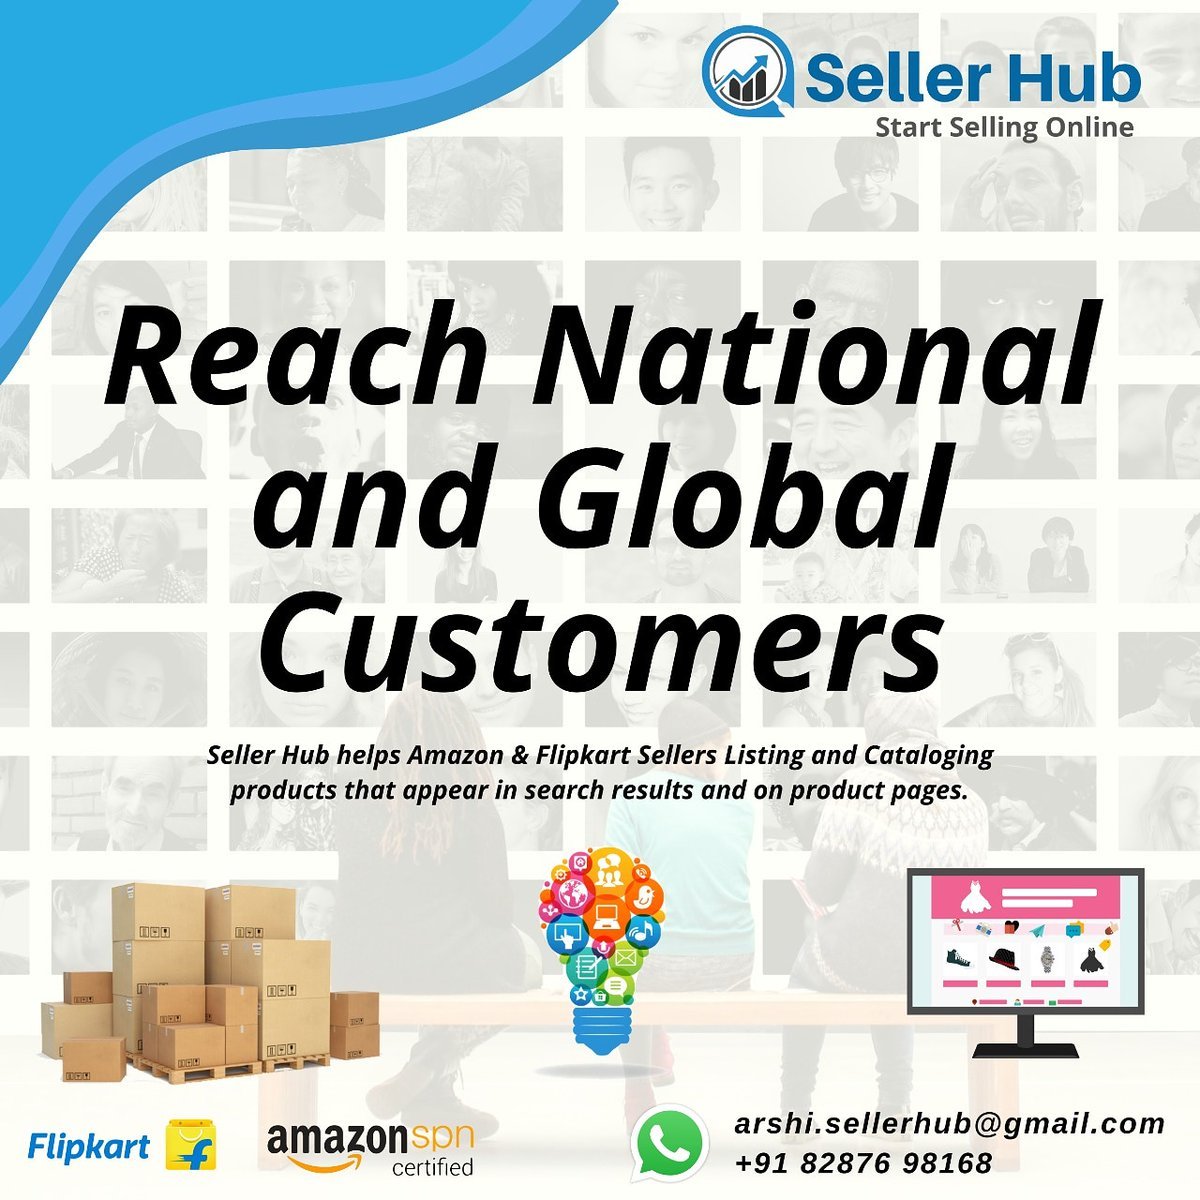 Seller Hub On Twitter Seller Hub Helps Amazon Flipkart Sellers Listing And Cataloging Products That Appear In Search Results And On Product Pages Teamwork Amazon Ecommerce Business Onlinestore Shopping Sellerhub Fashion